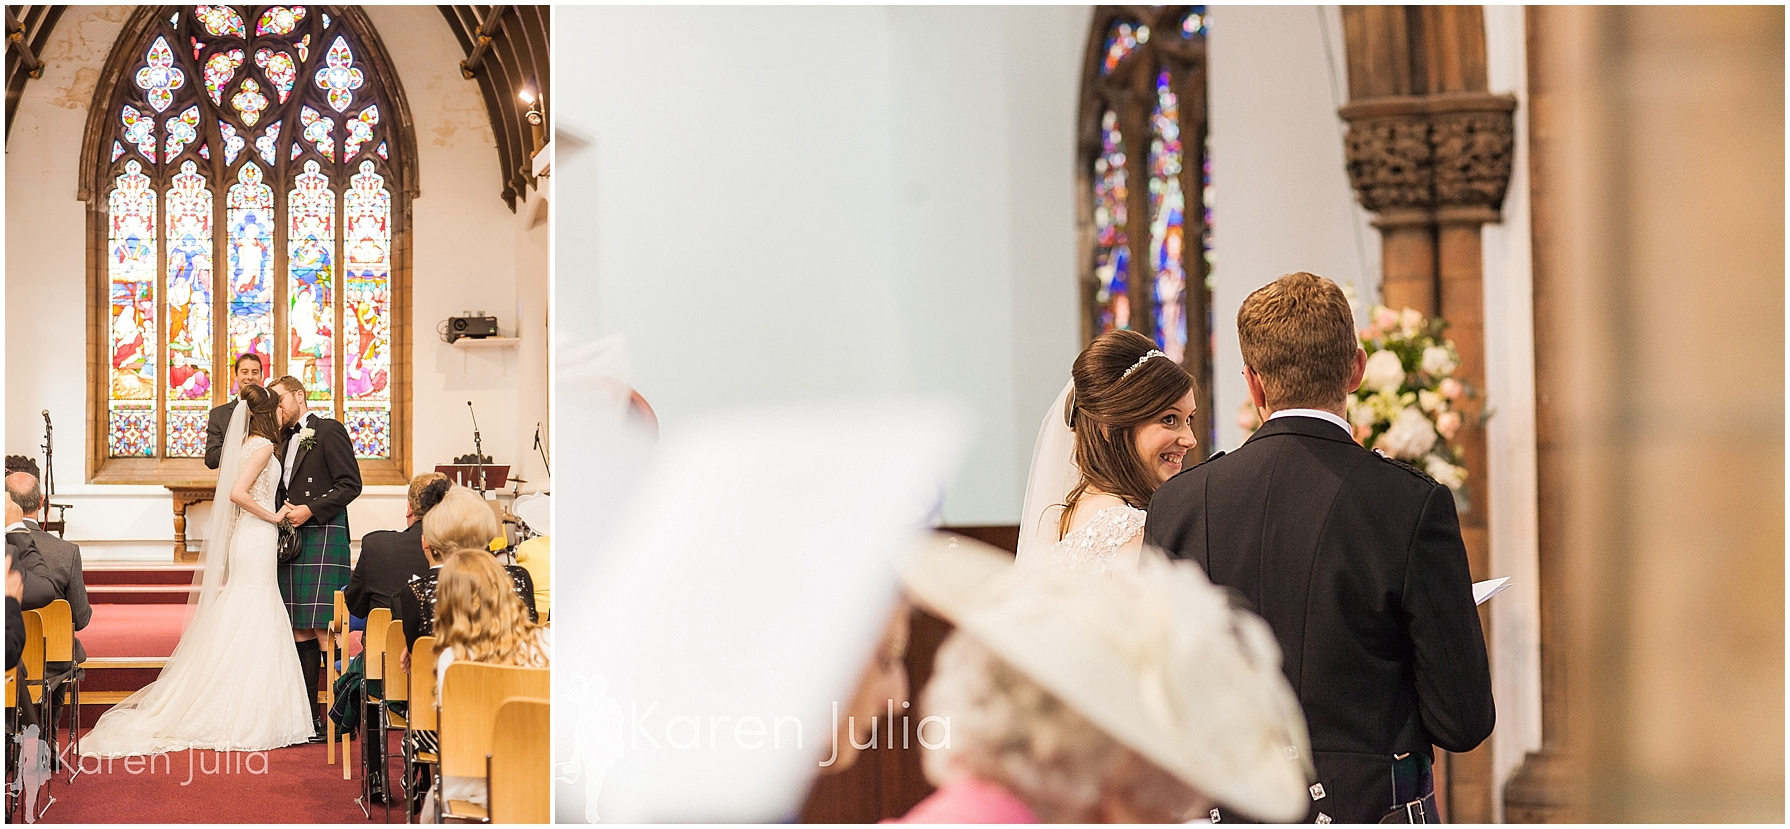 wedding ceremony in church